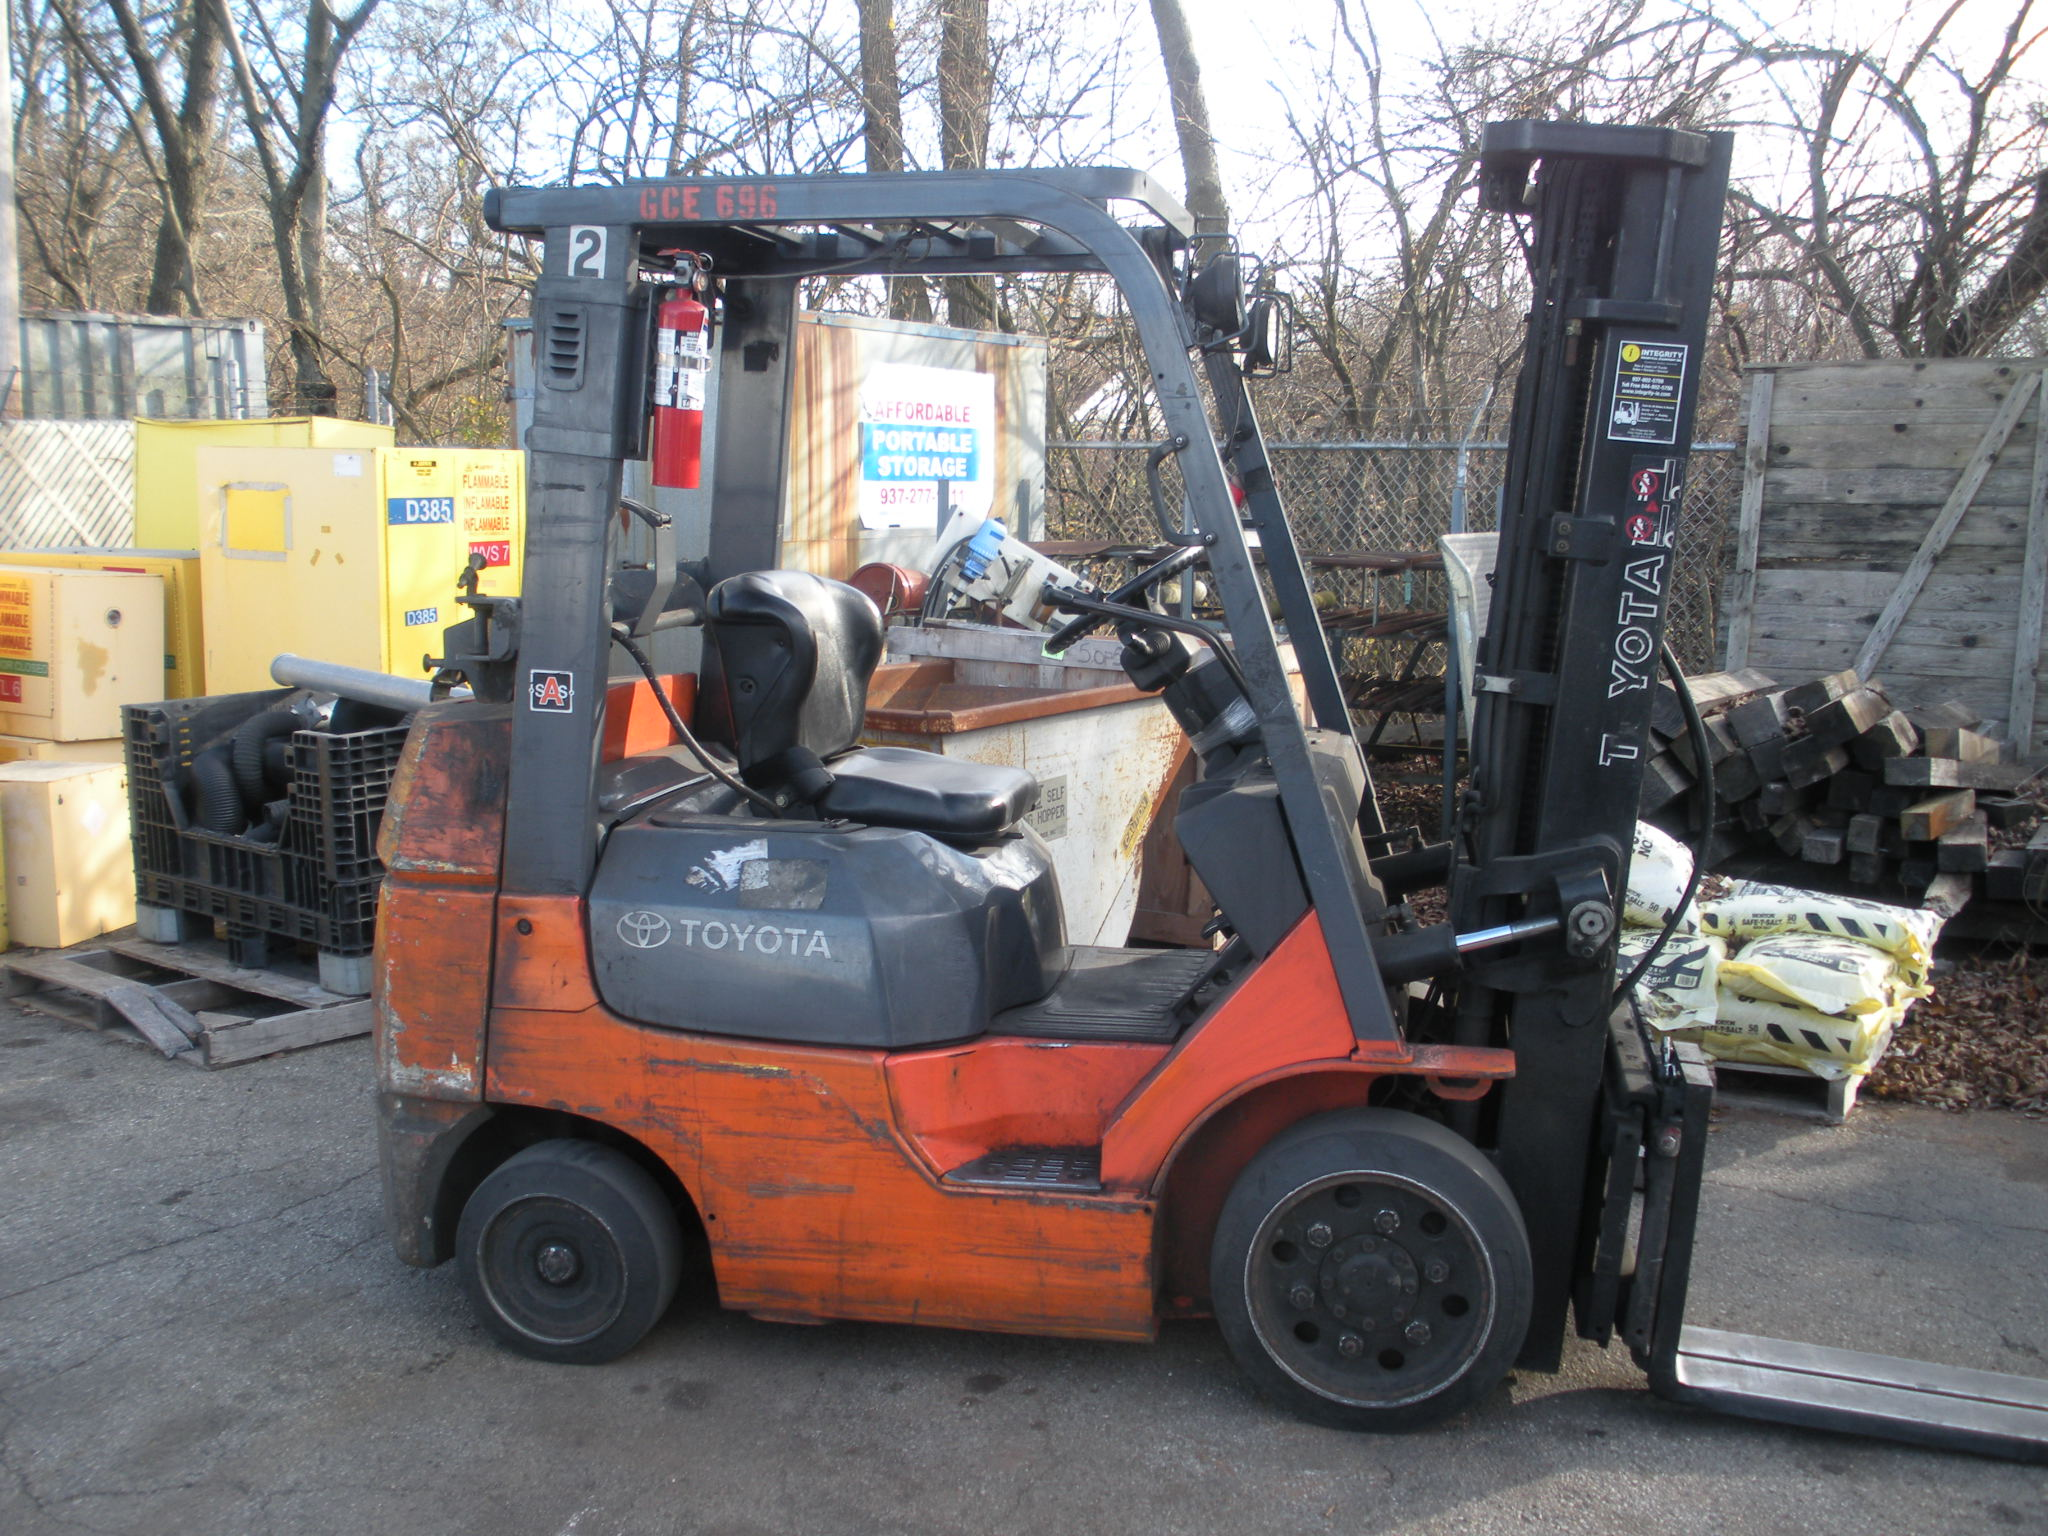 Toyota Fork Lift 4,500 # Capacity 3-Stage Mast, Hard Tire, Propane